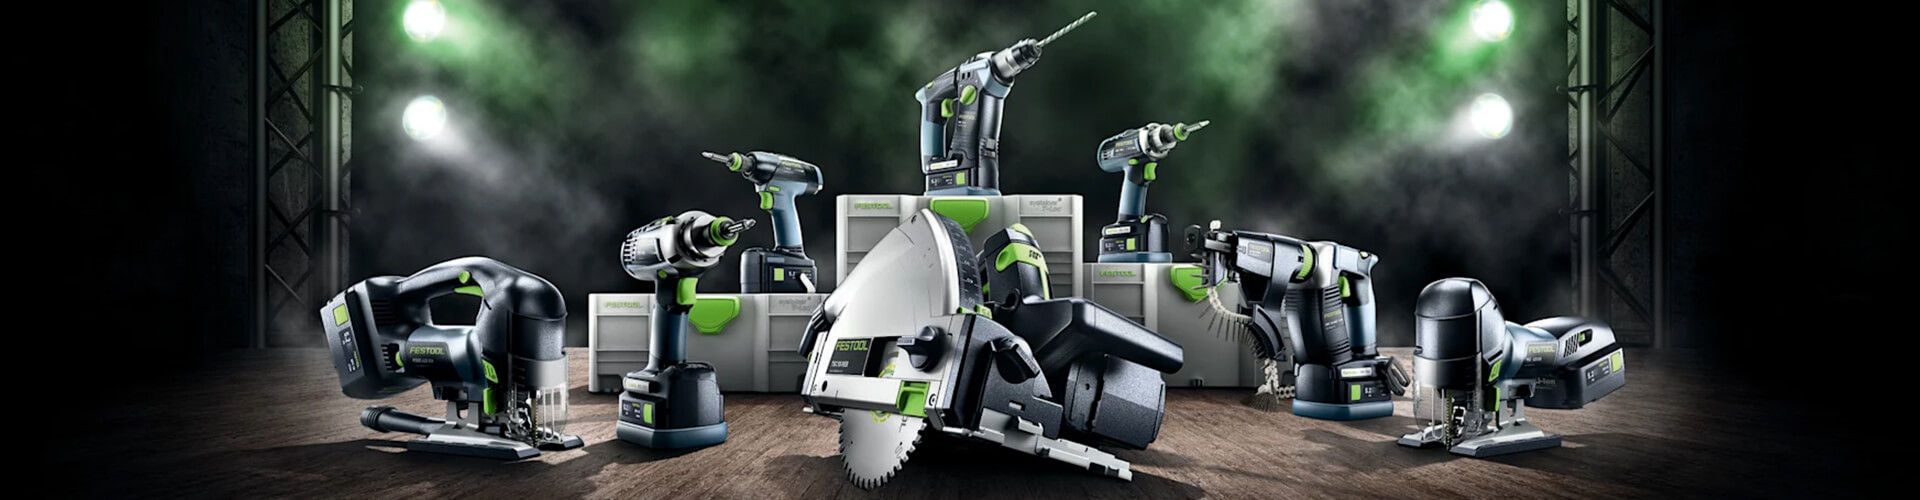 Festool Online Shop